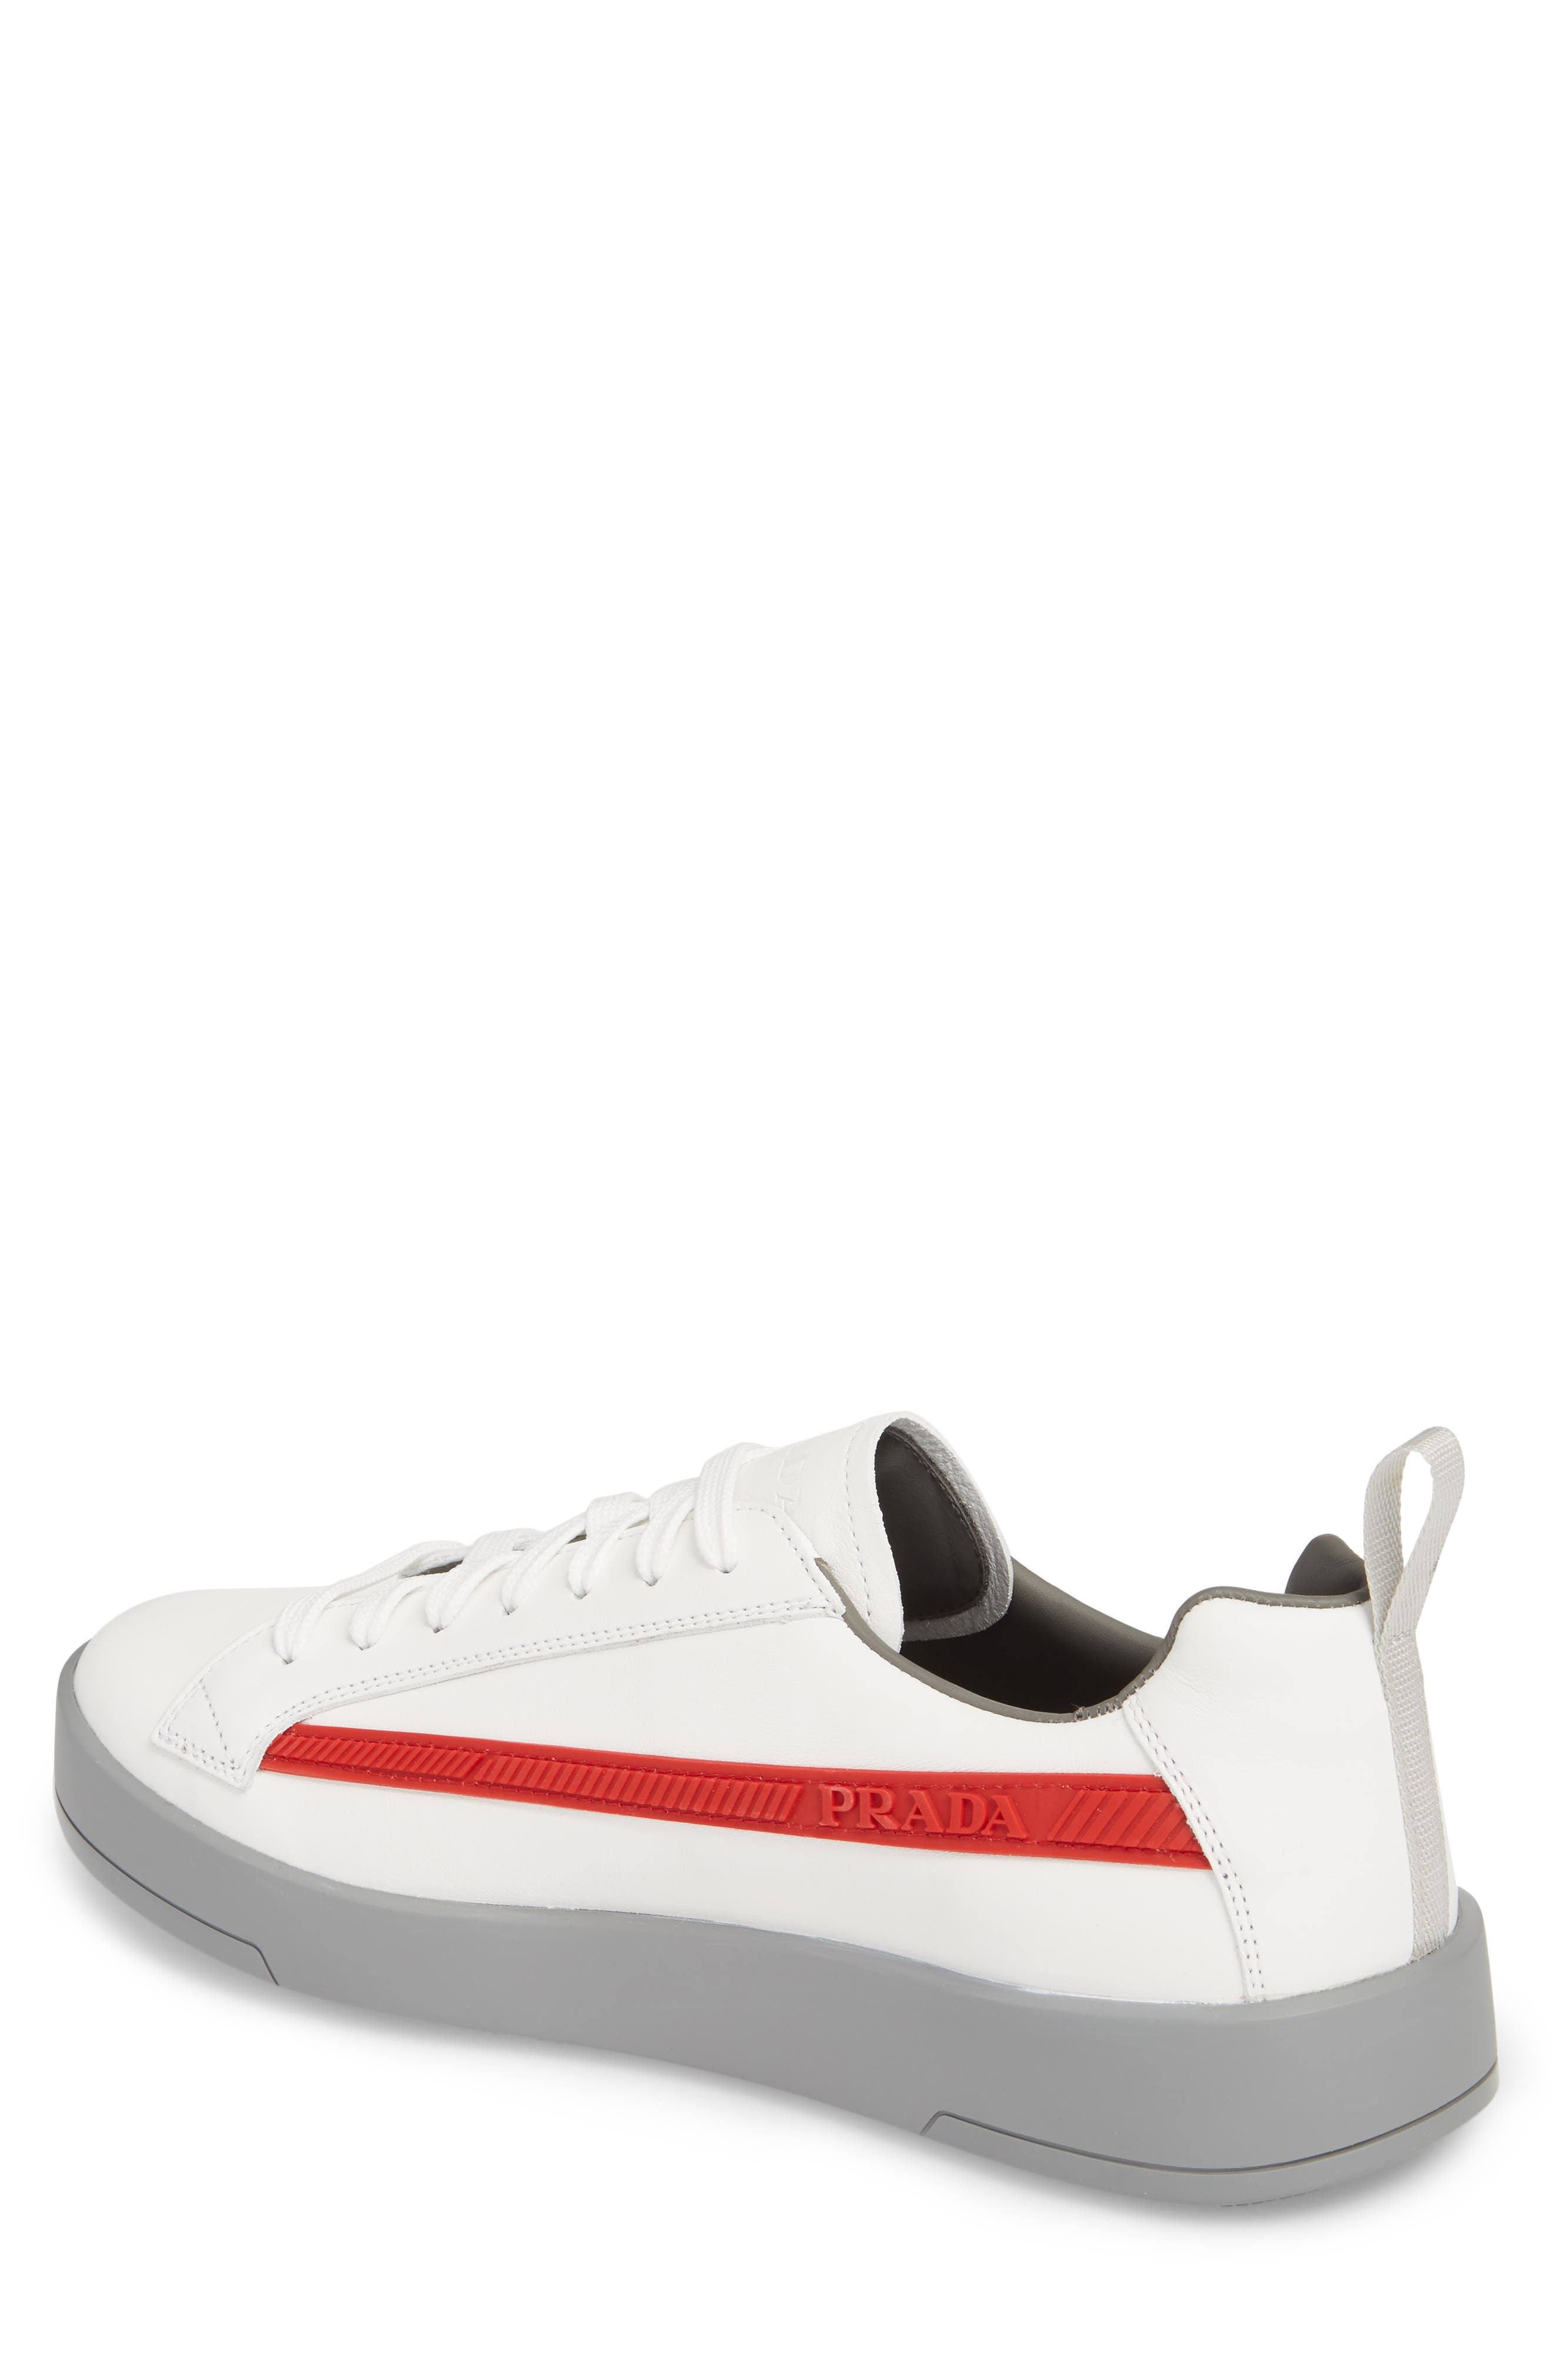 Linea Rossa Sneaker,                             Alternate thumbnail 2, color,                             Bianco